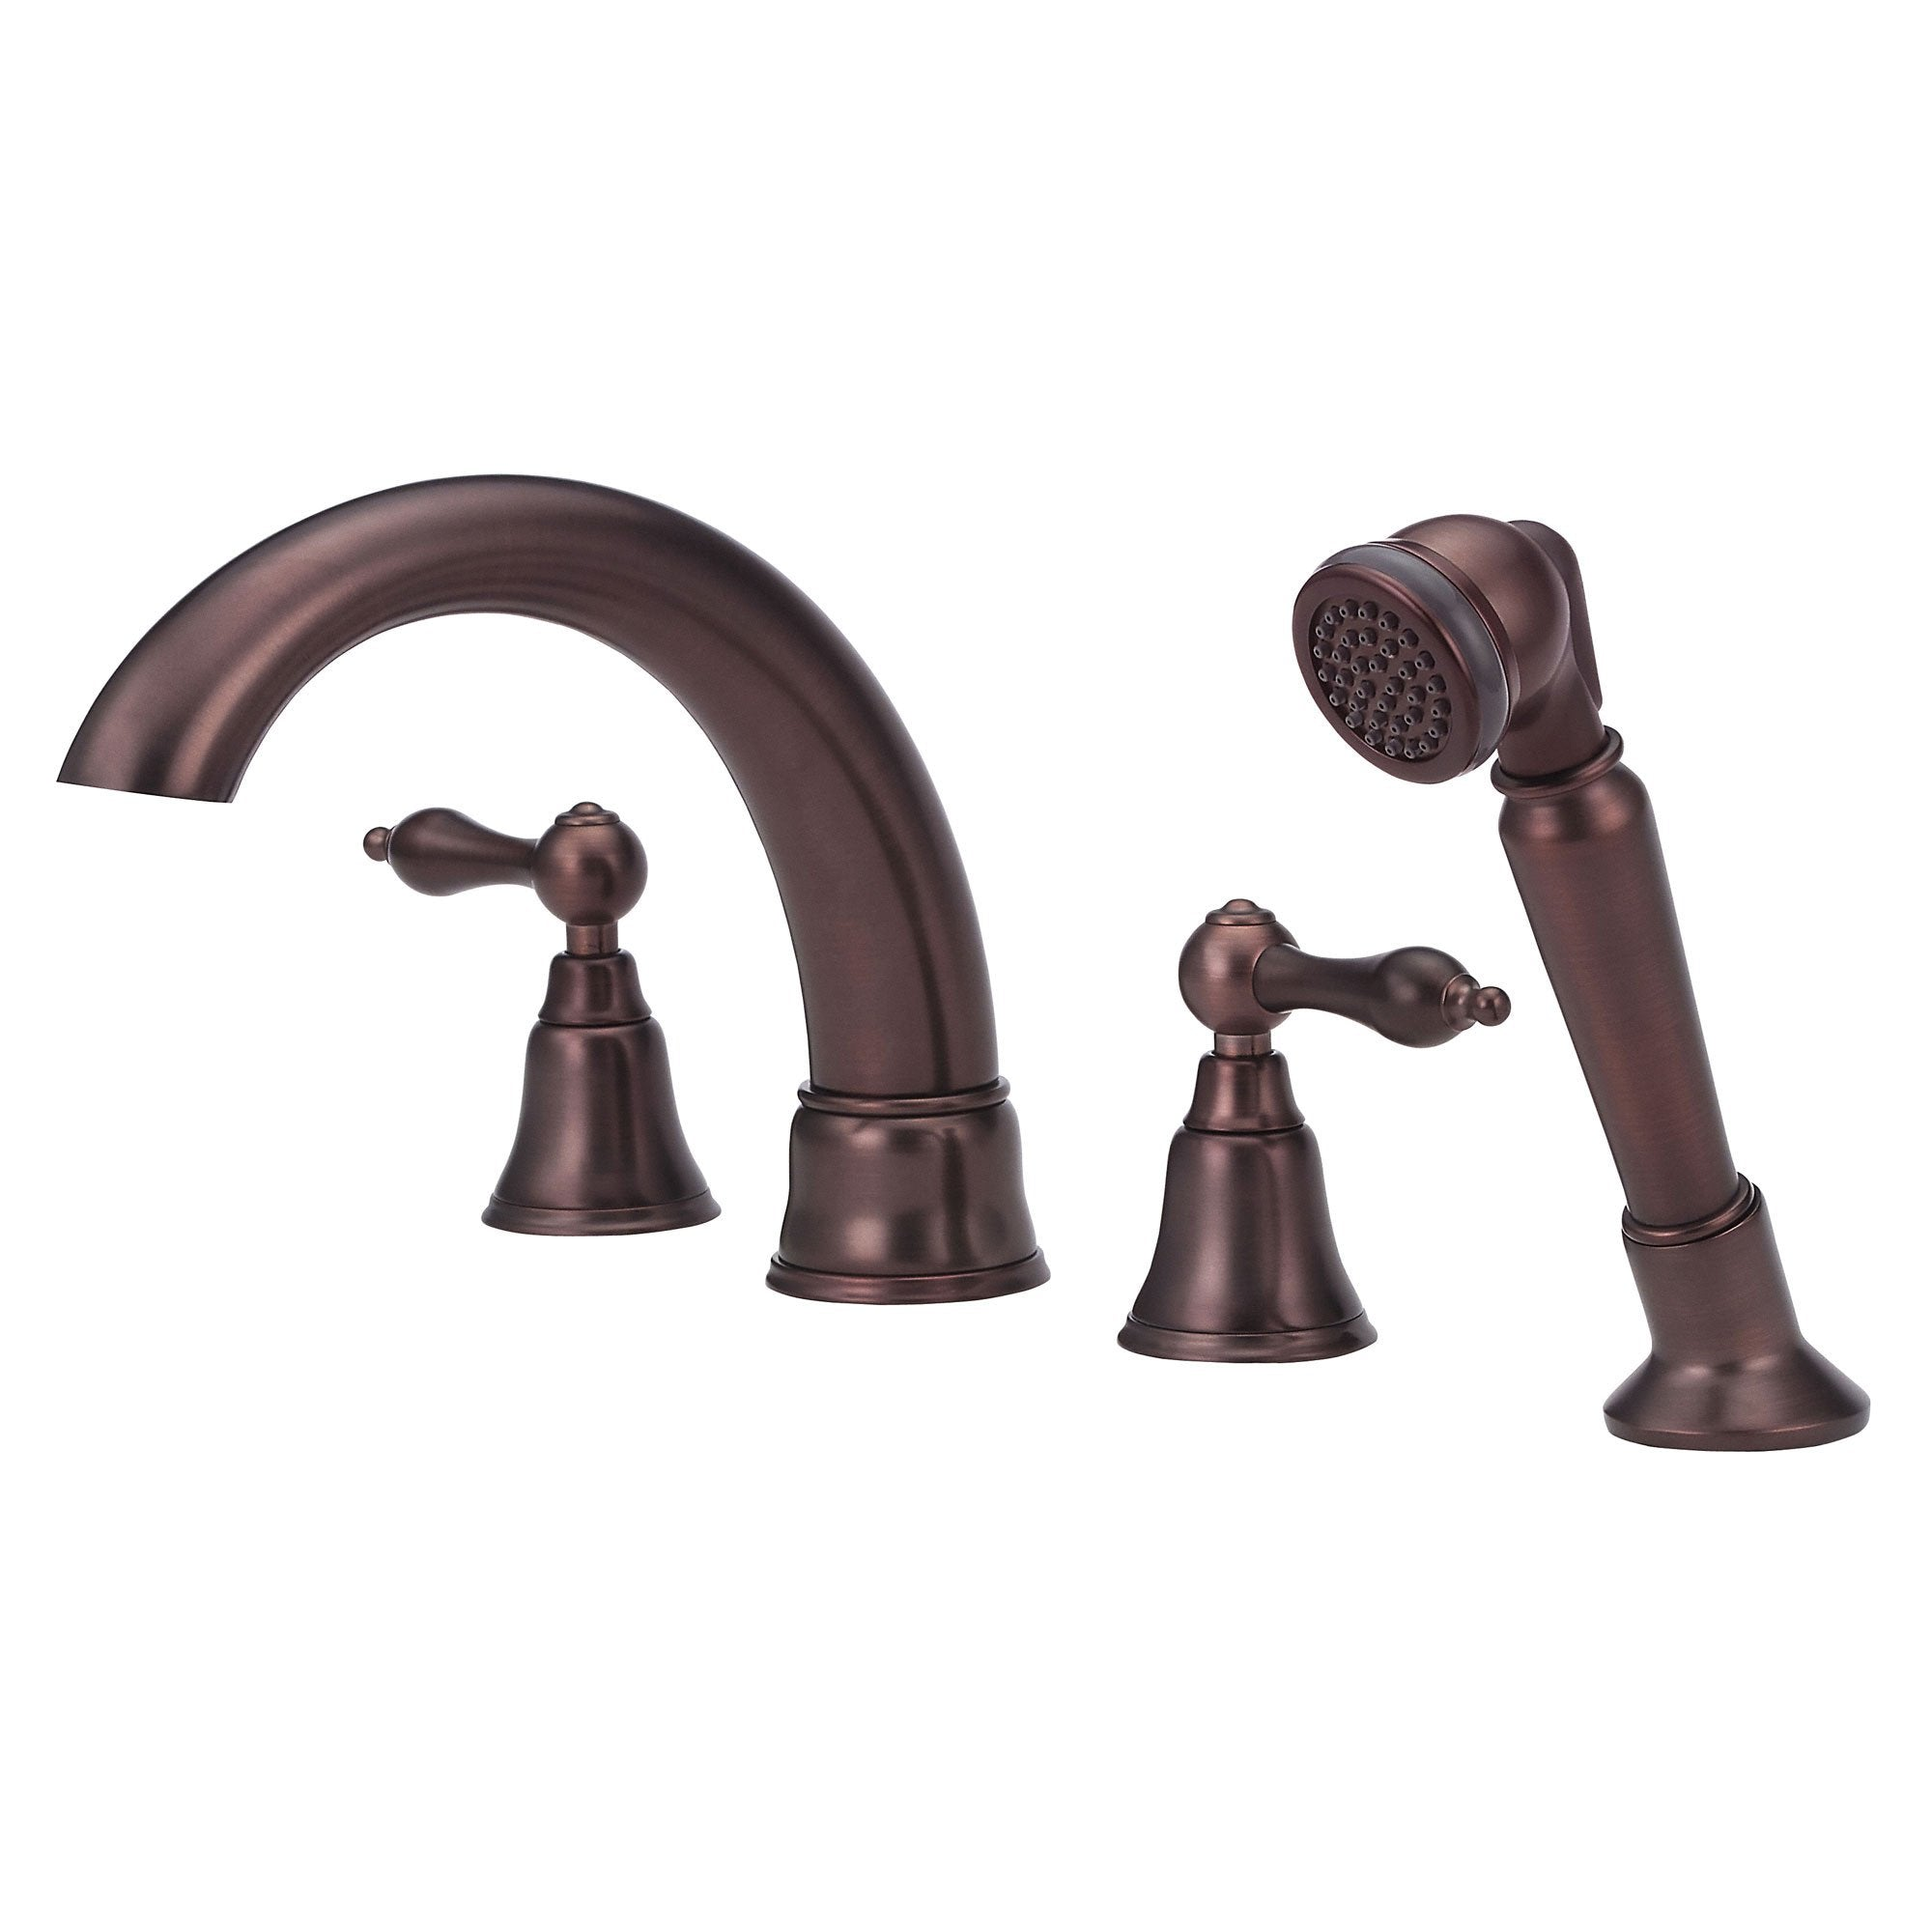 Danze Fairmont Oil Rubbed Bronze Widespread Roman Tub Filler Faucet with Sprayer INCLUDES Rough-in Valve